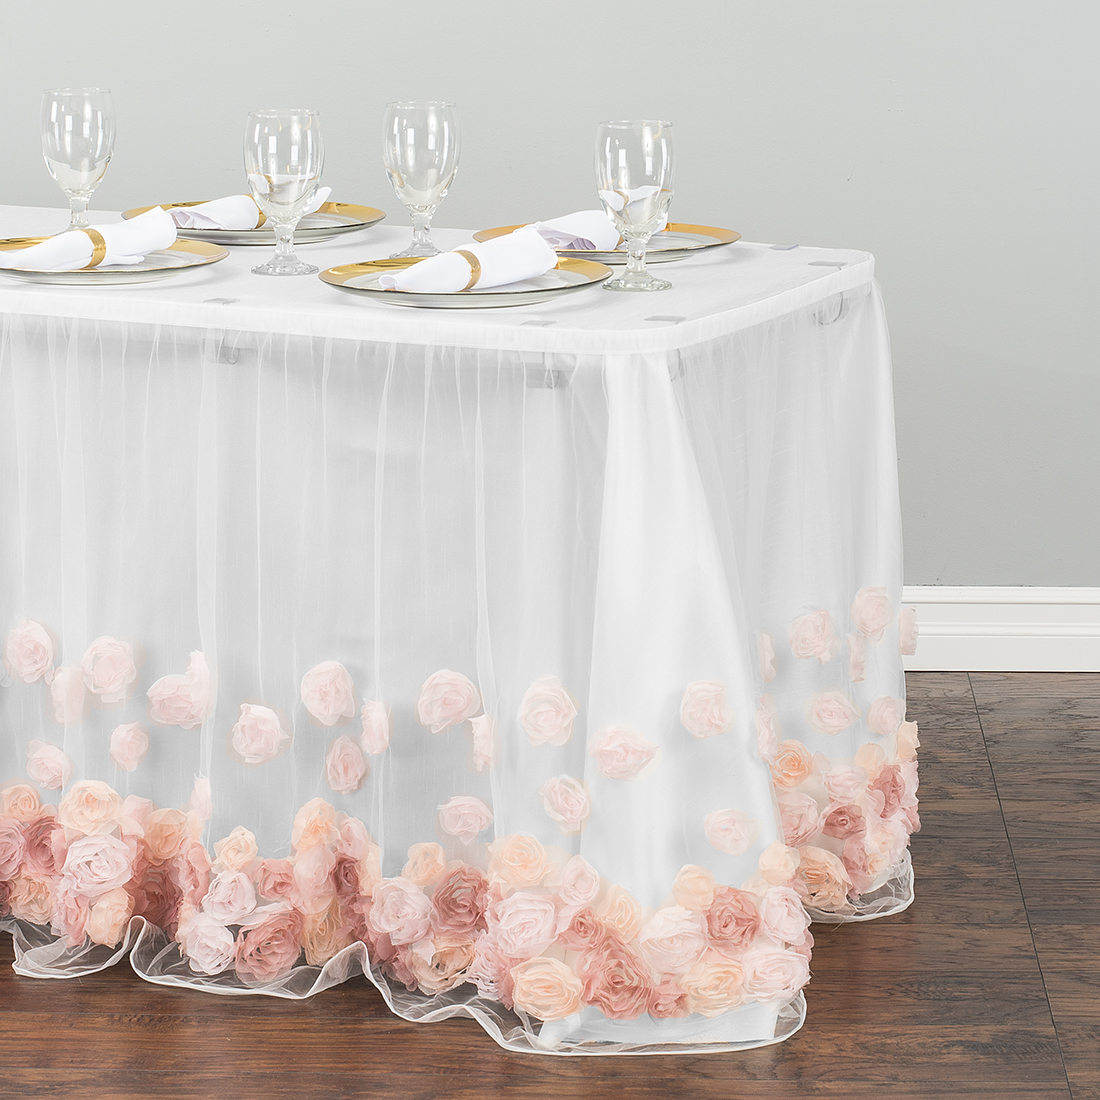 tulle rose table skirt blush pink round accent skirts verizon android tablet teak patio furniture outdoor serving cart light lamp white acrylic side mosaic tile dale tiffany